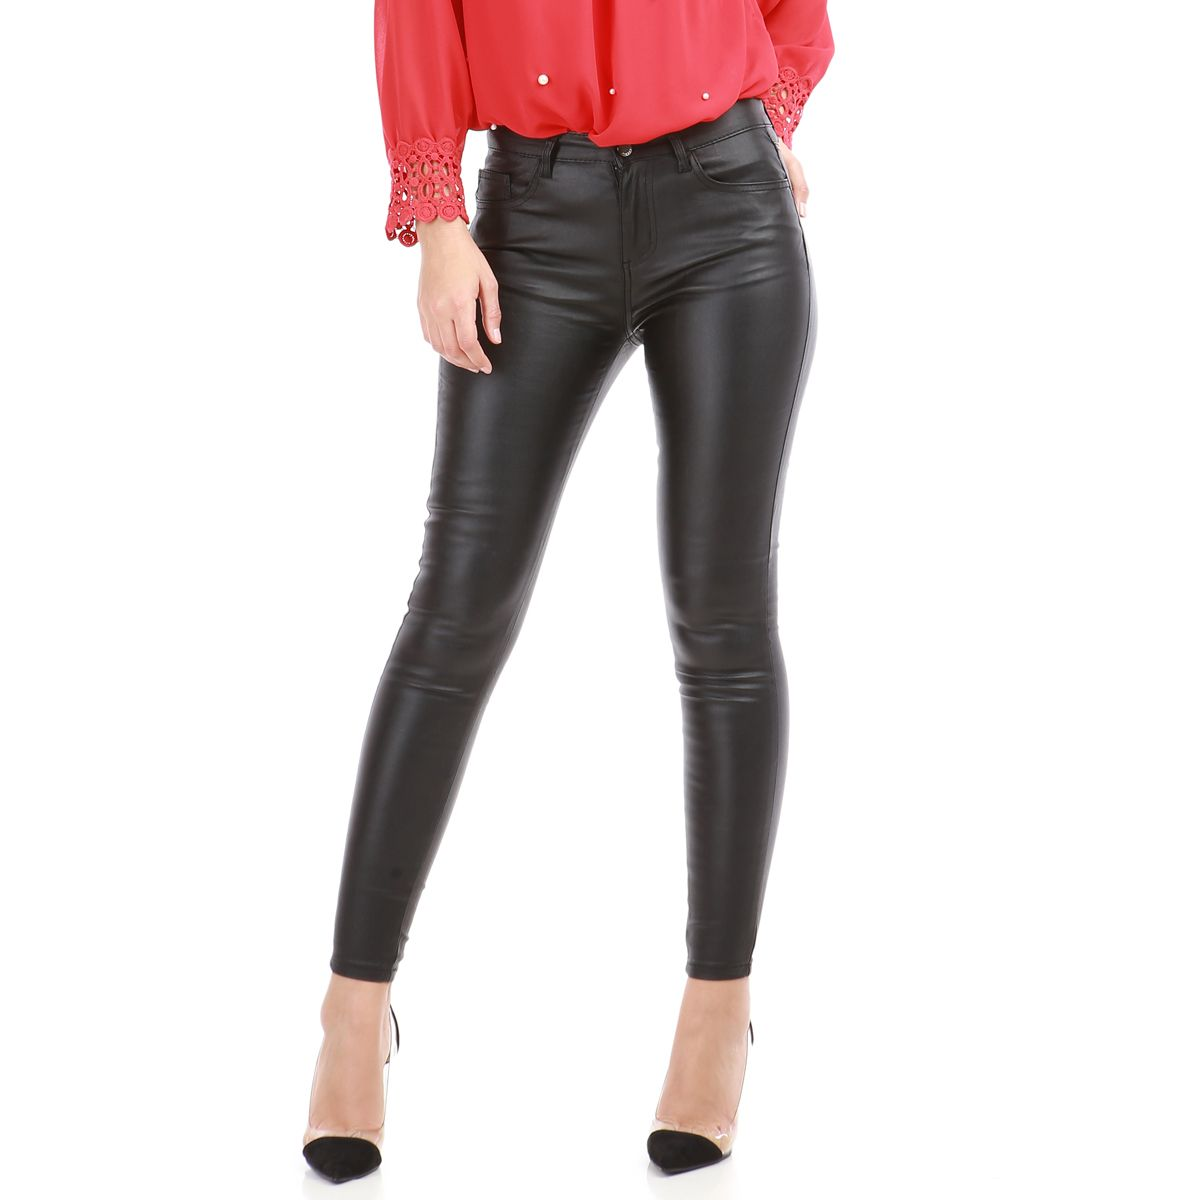 Pantalon slim noir simili cuir